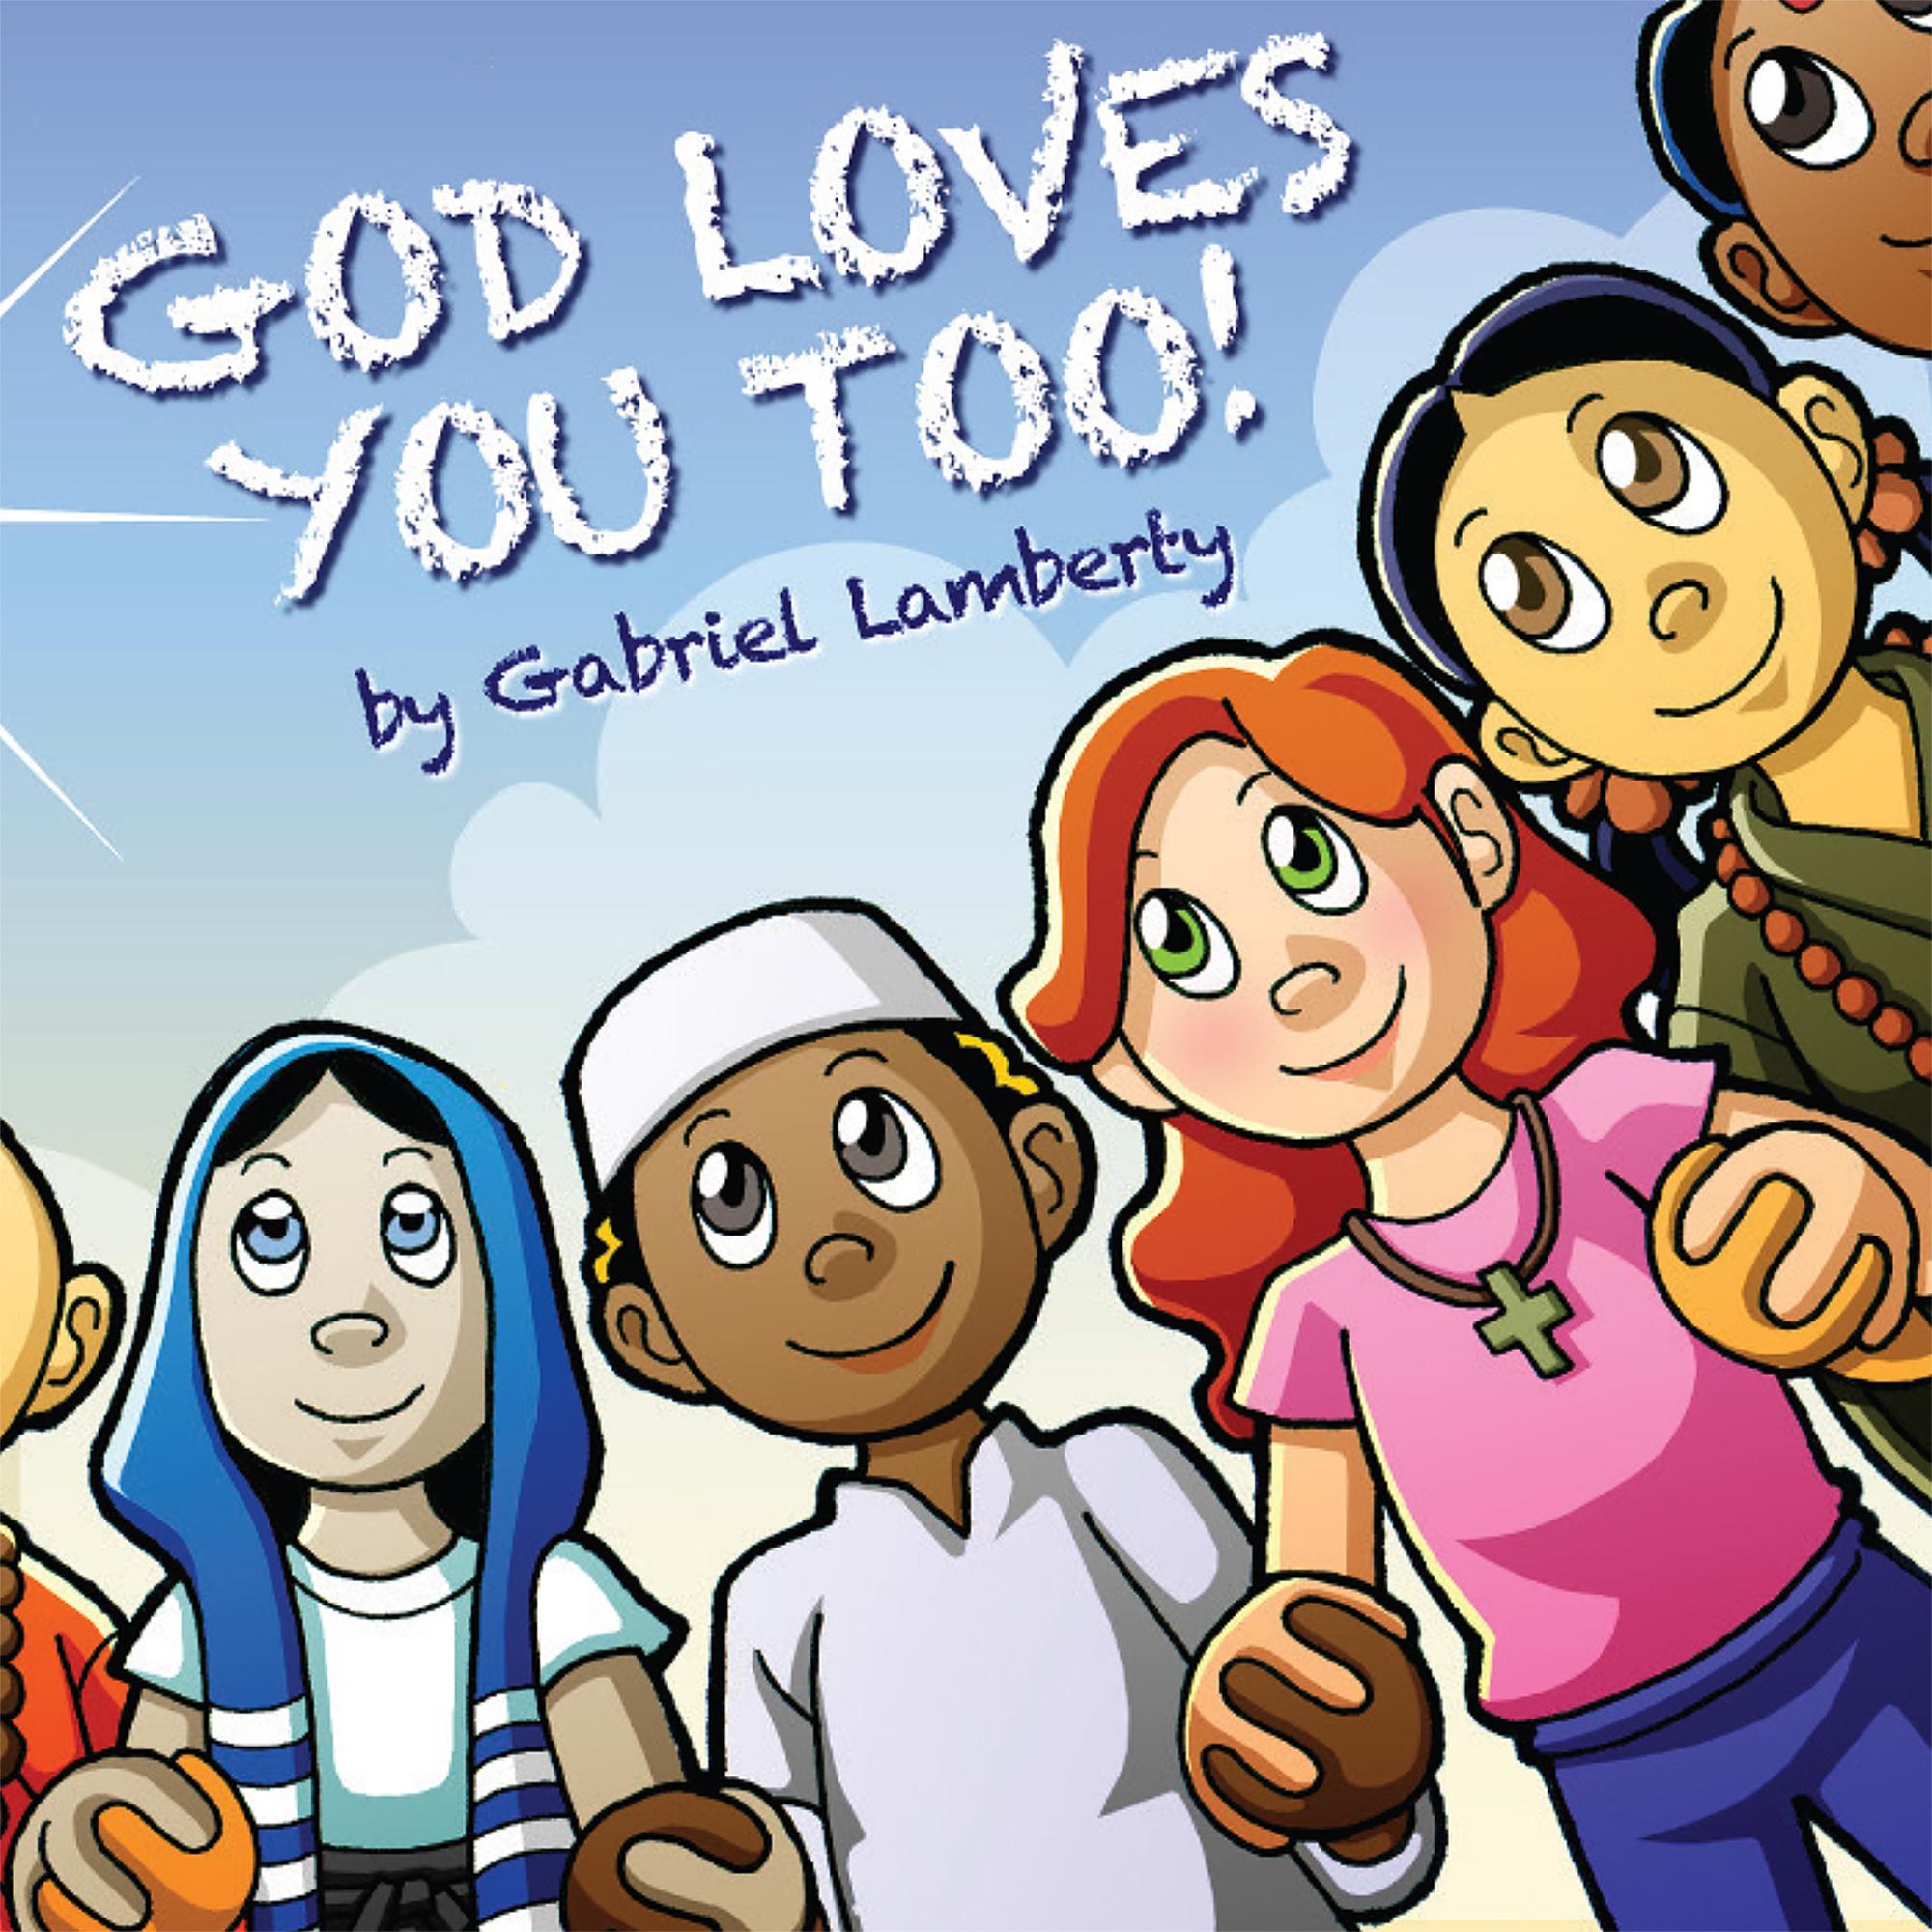 "Reformed Theology ""God Loves You Too!"" Unites the Five Main Religions in a Children's Story That Reveals the Power of Prayer  Calvinism"